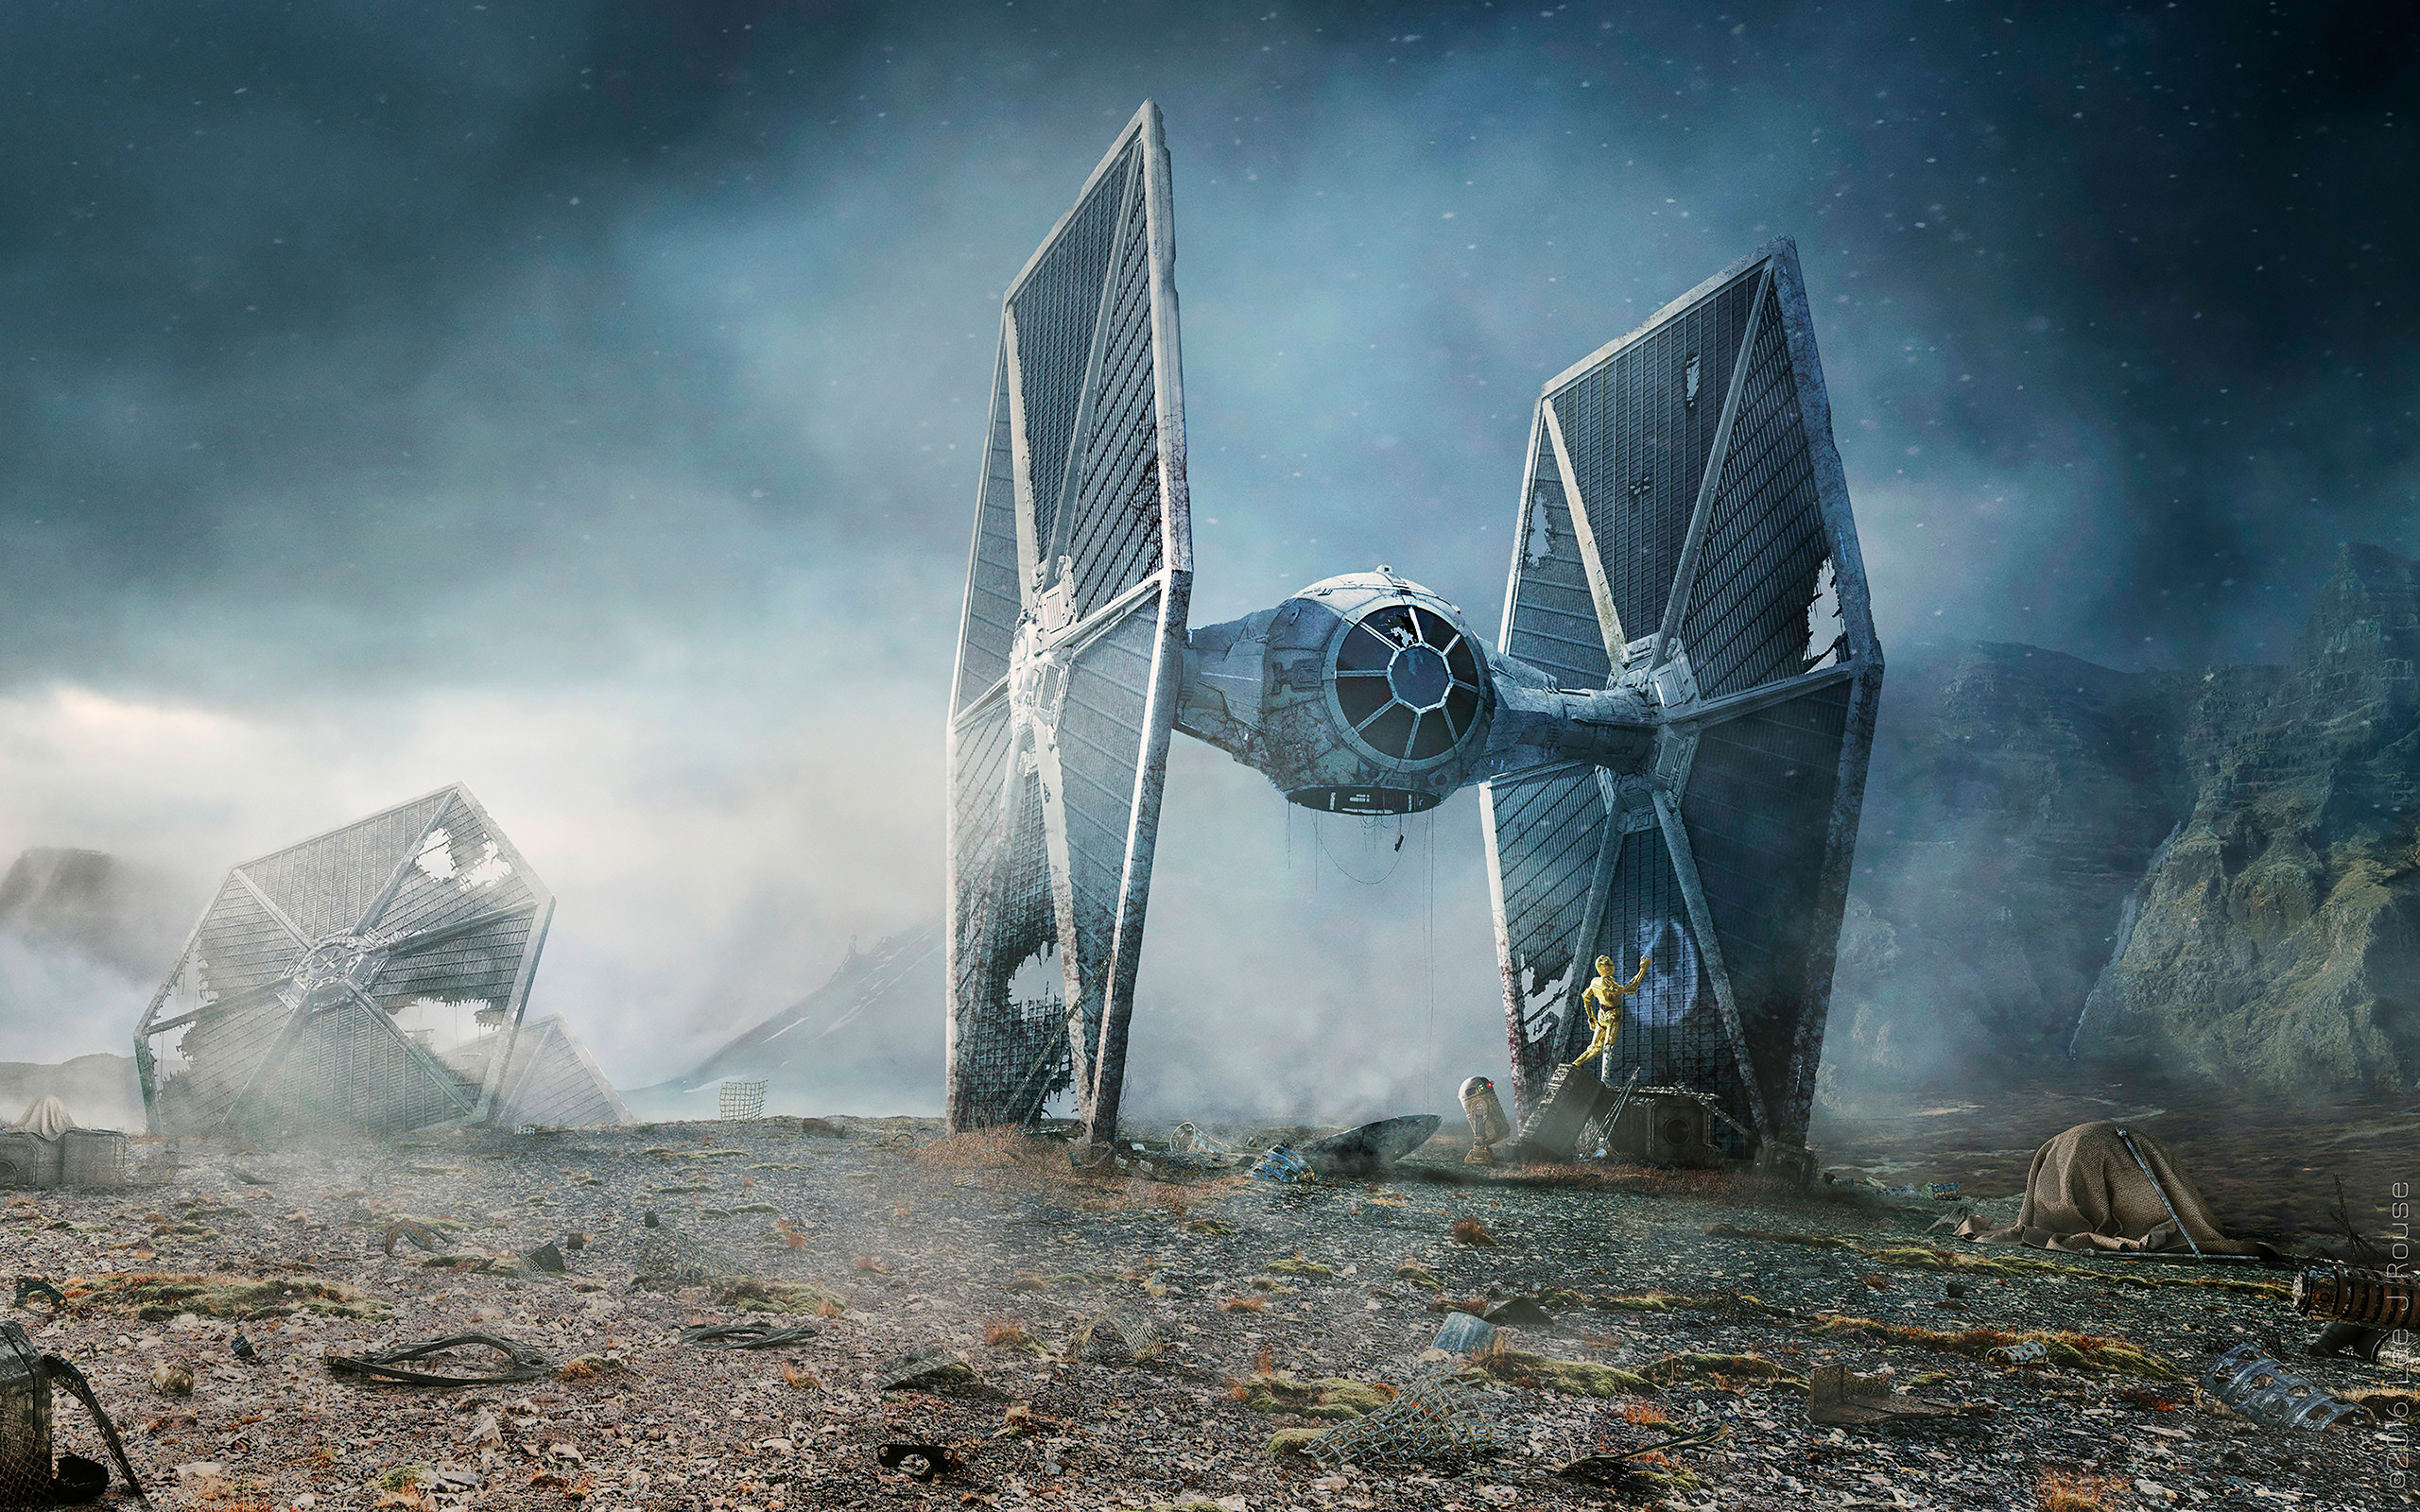 Daily Wallpaper Star Wars Tie Fighter Crash Landing I Like To Waste My Time